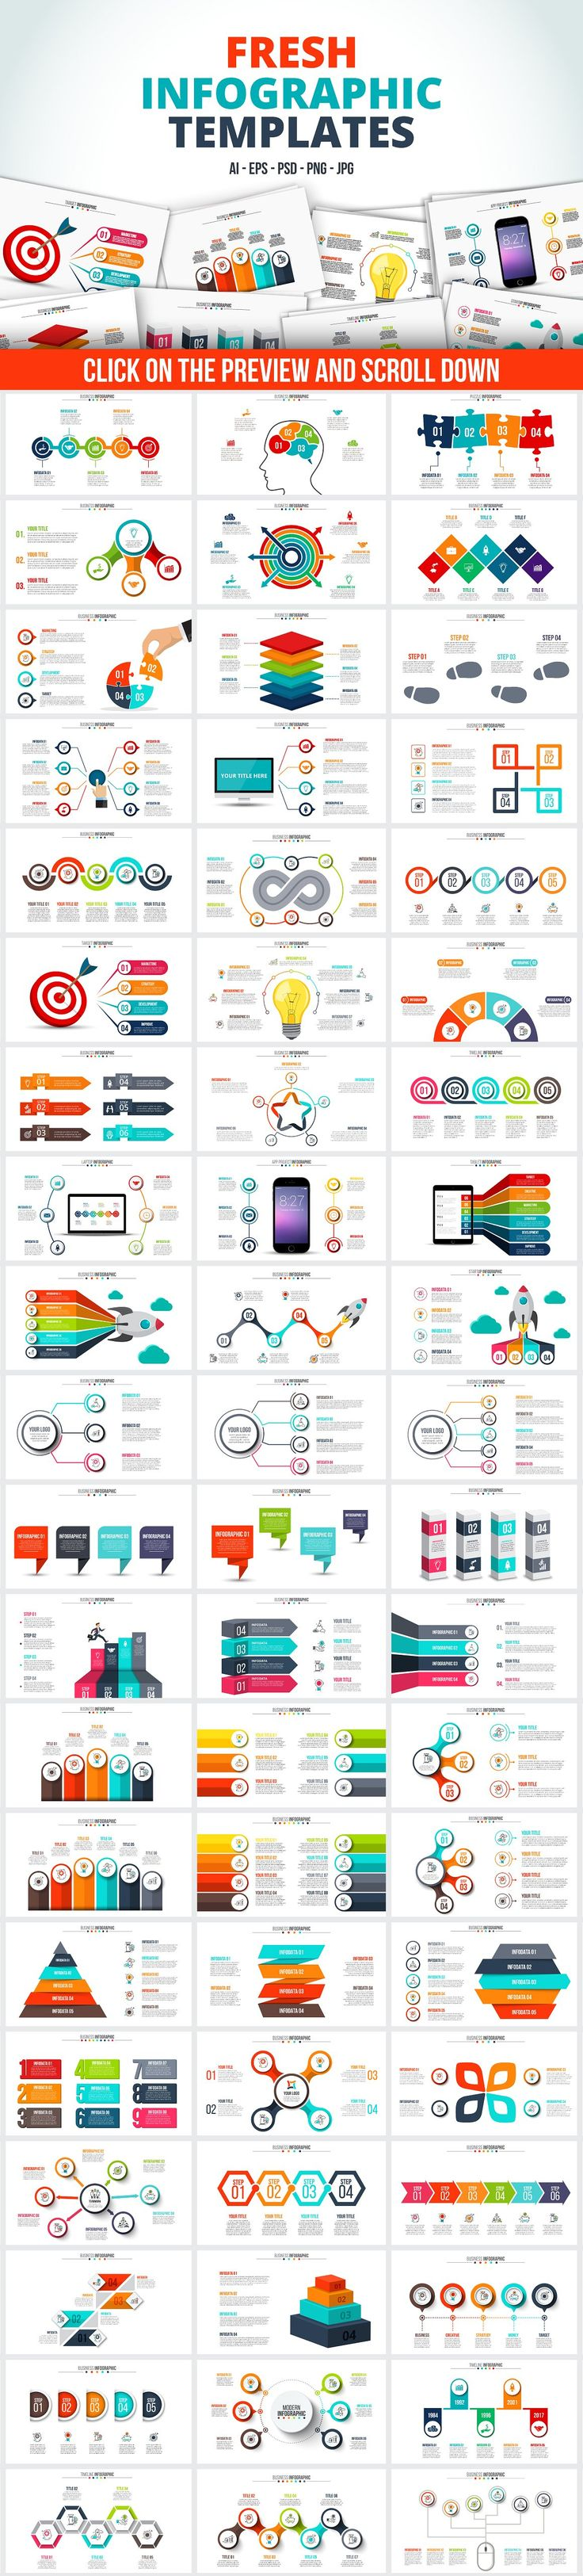 Infographic templates bundle by Abert on @creativemarket